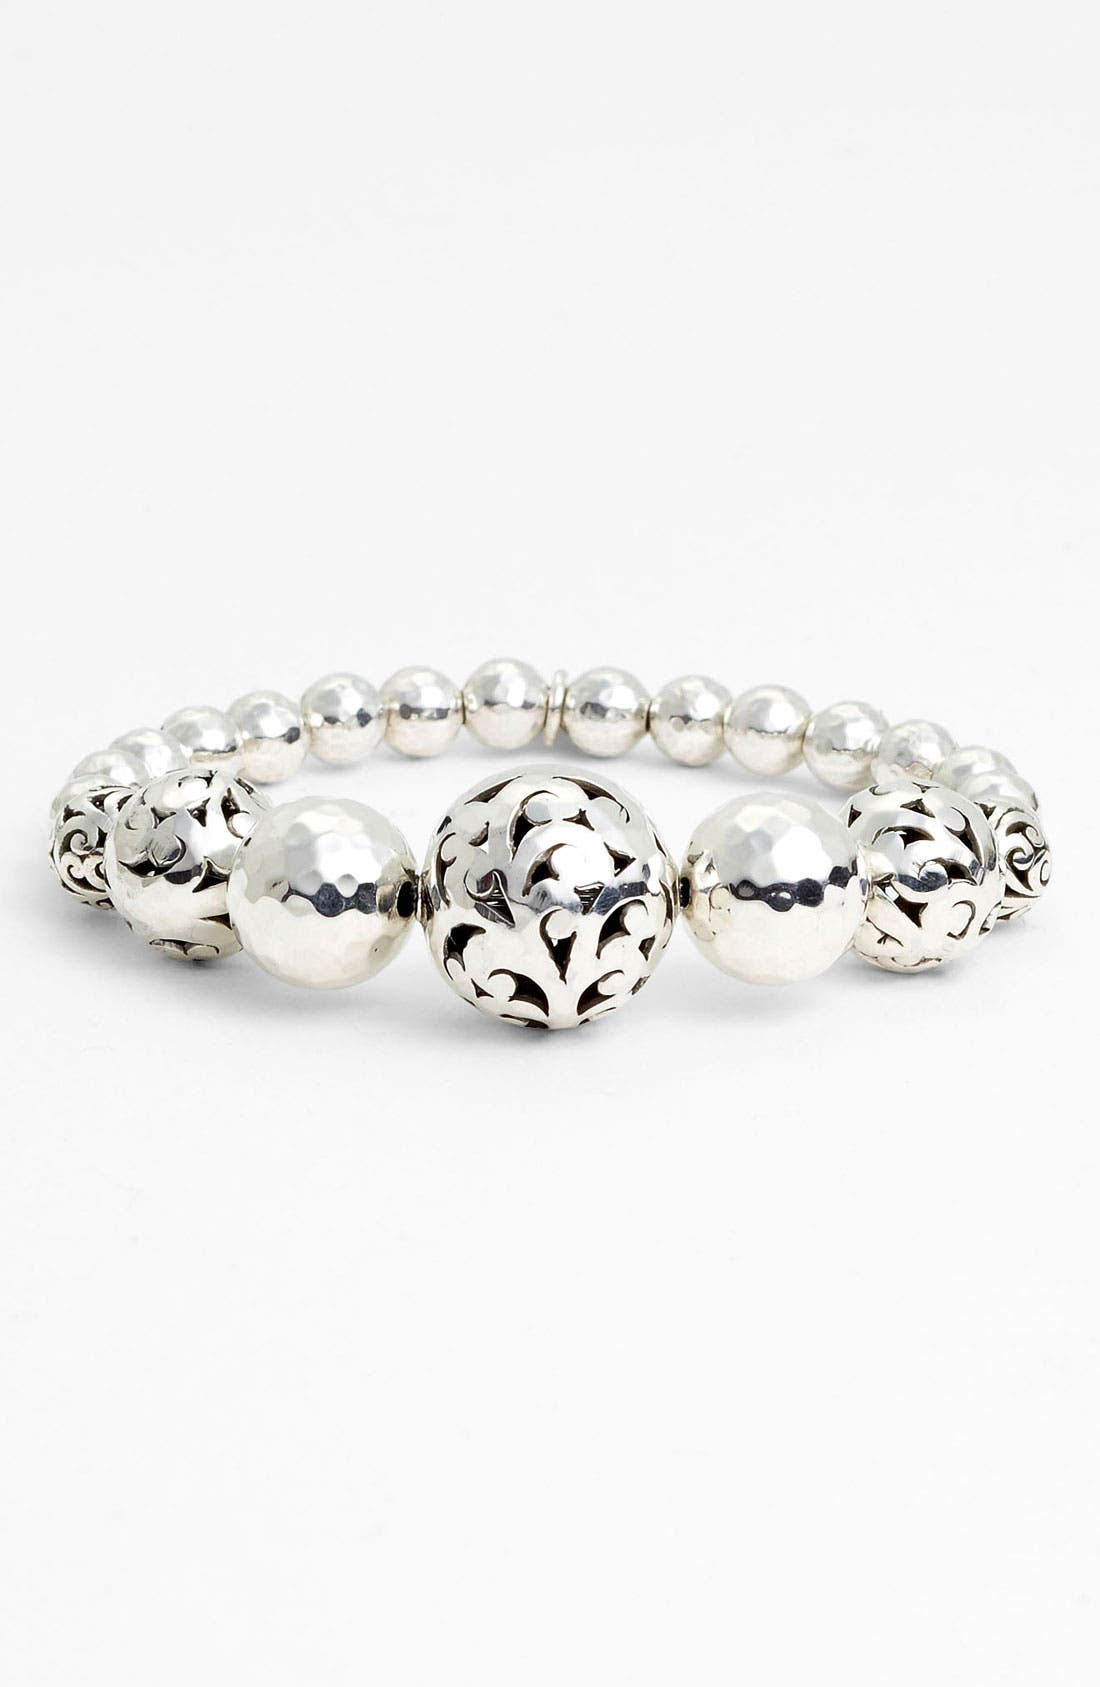 Main Image - Lois Hill 'Ball & Chain' Graduated Bead Stretch Bracelet